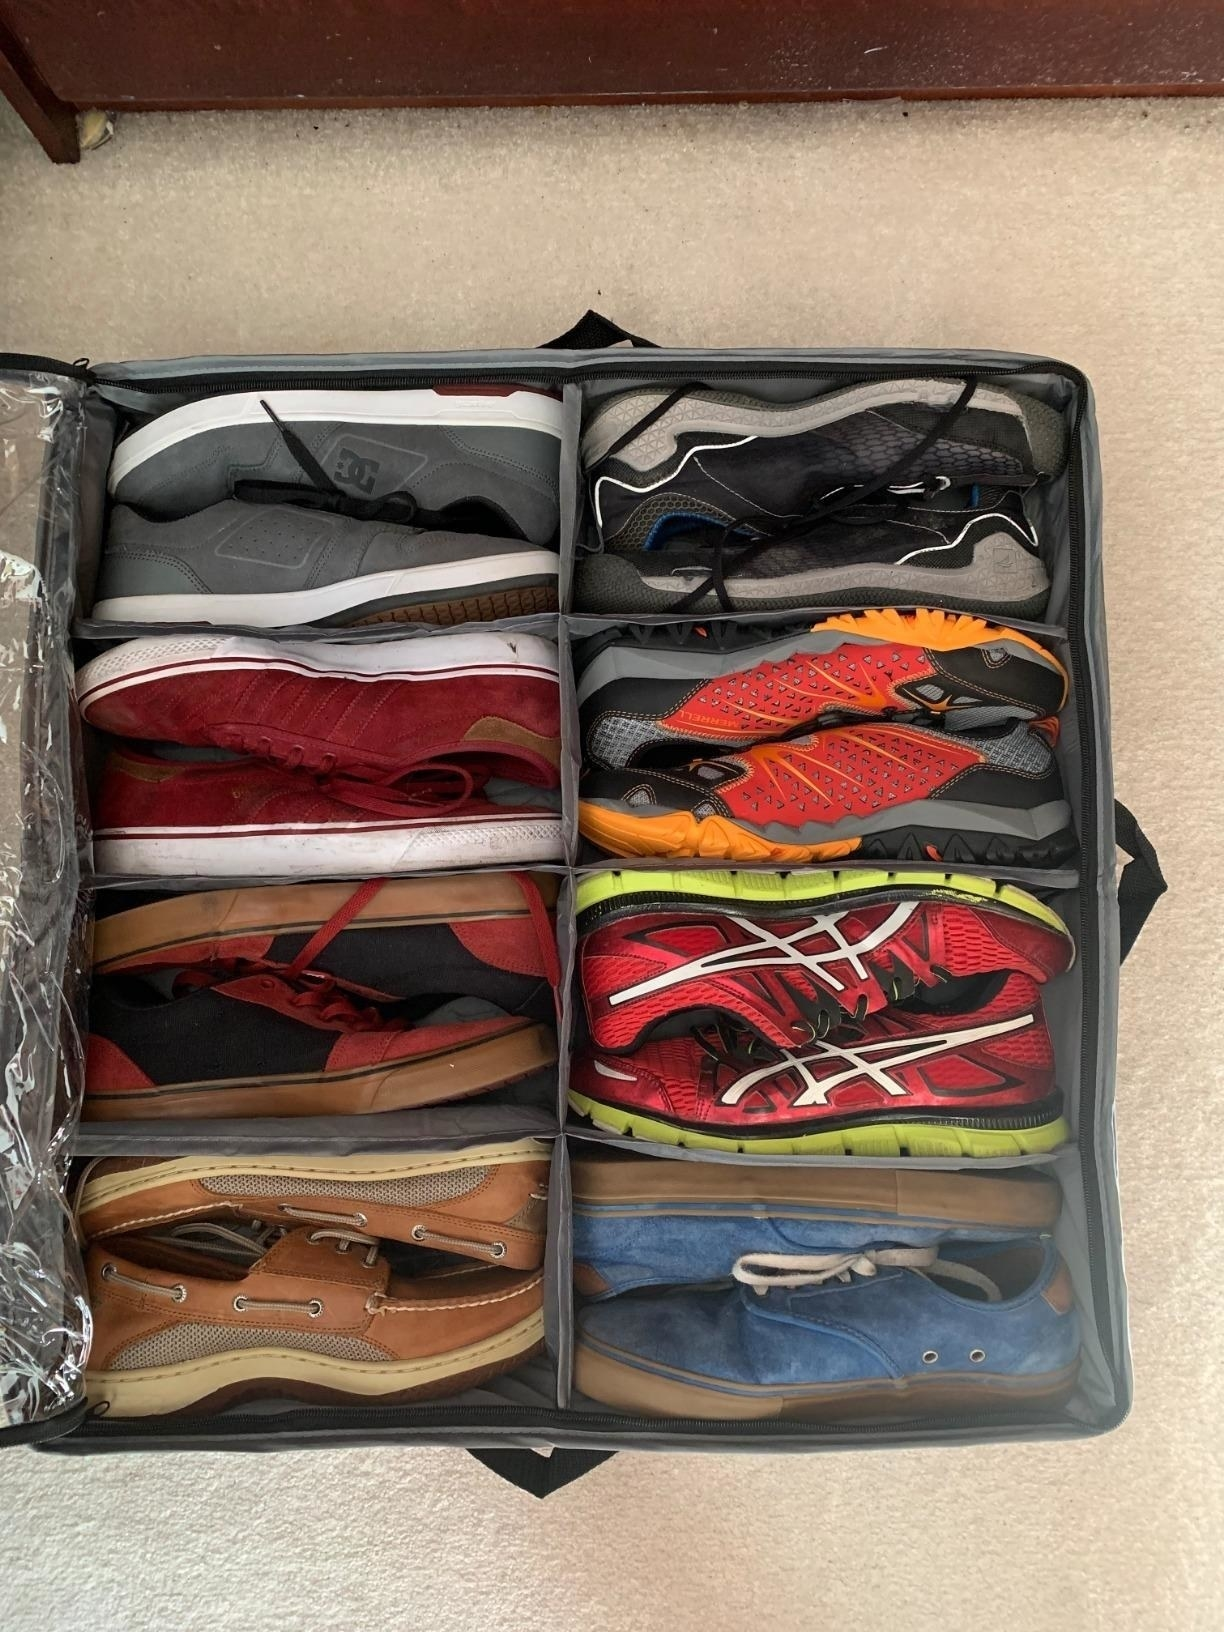 A reviewer's sneakers, boat shoes, keds, and sandals fitting neatly in the 2x4 organizer